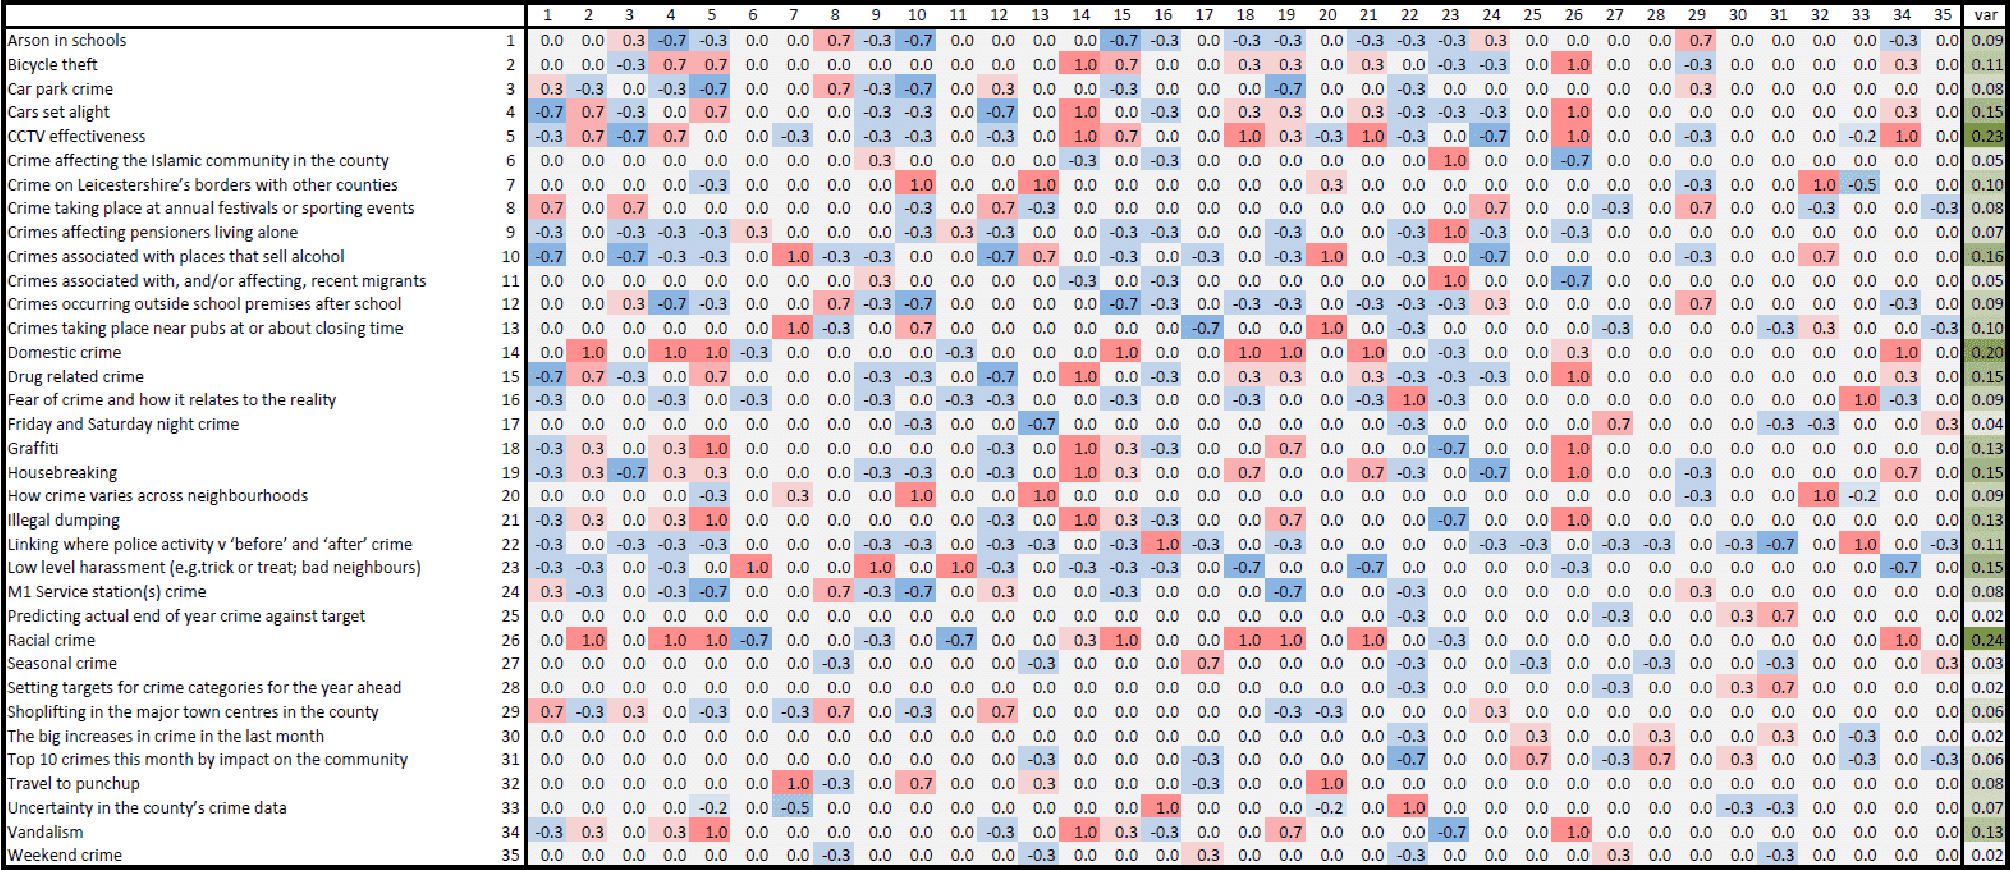 Figure 3.9: Difference distance matrix showing the normalised geovisualization expert (D) distance matrix minus the averaged C1, C2 and C3 combined distance matrix (red-white-blue bivariate colouring). The final column shows the variances of each row (darker the colour hue = greater the variance) as a rough indicator of agreement between D and the averaged C1, C2 and C3 categorisation. The matrix is symmetrical along the leading diagonal.